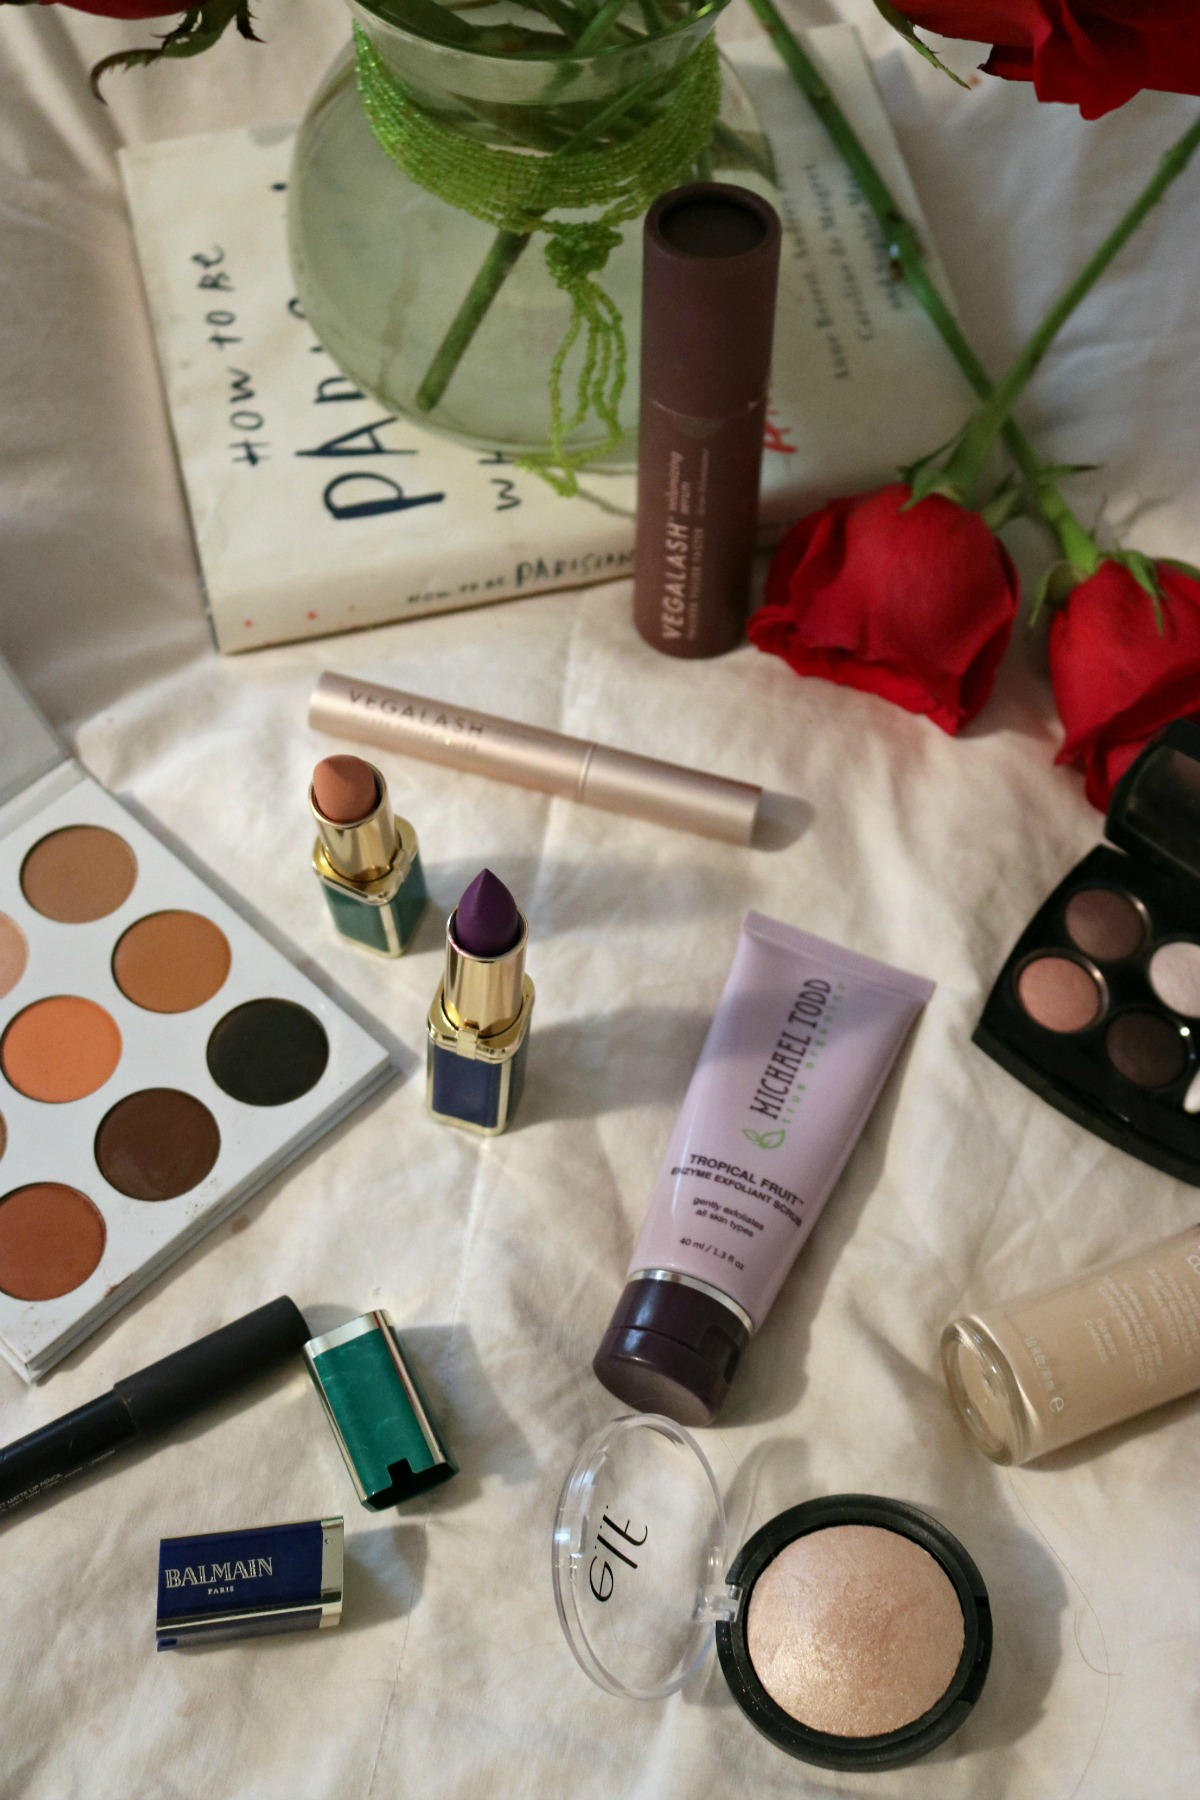 Overrated Makeup Products I Kylie Cosmetics, VegaLash, Chanel, ELF Cosmetics, Michael Todd Beauty and BalmainxLoreal